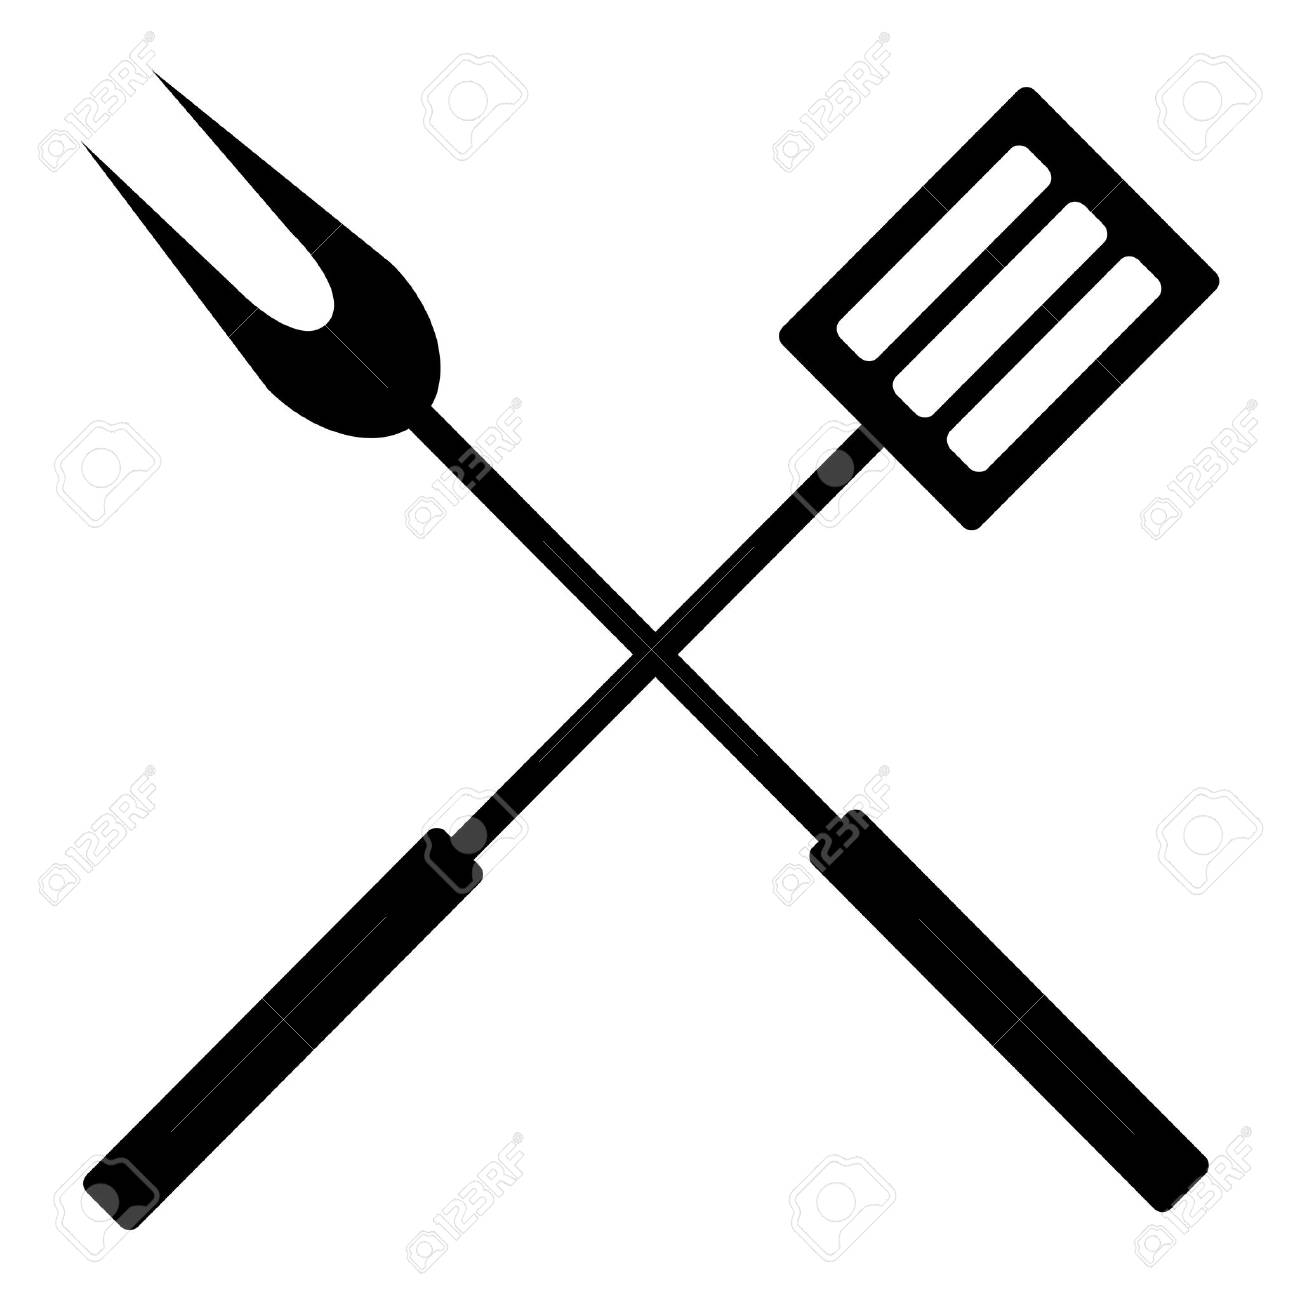 Bbq utensils clipart 7 » Clipart Station.